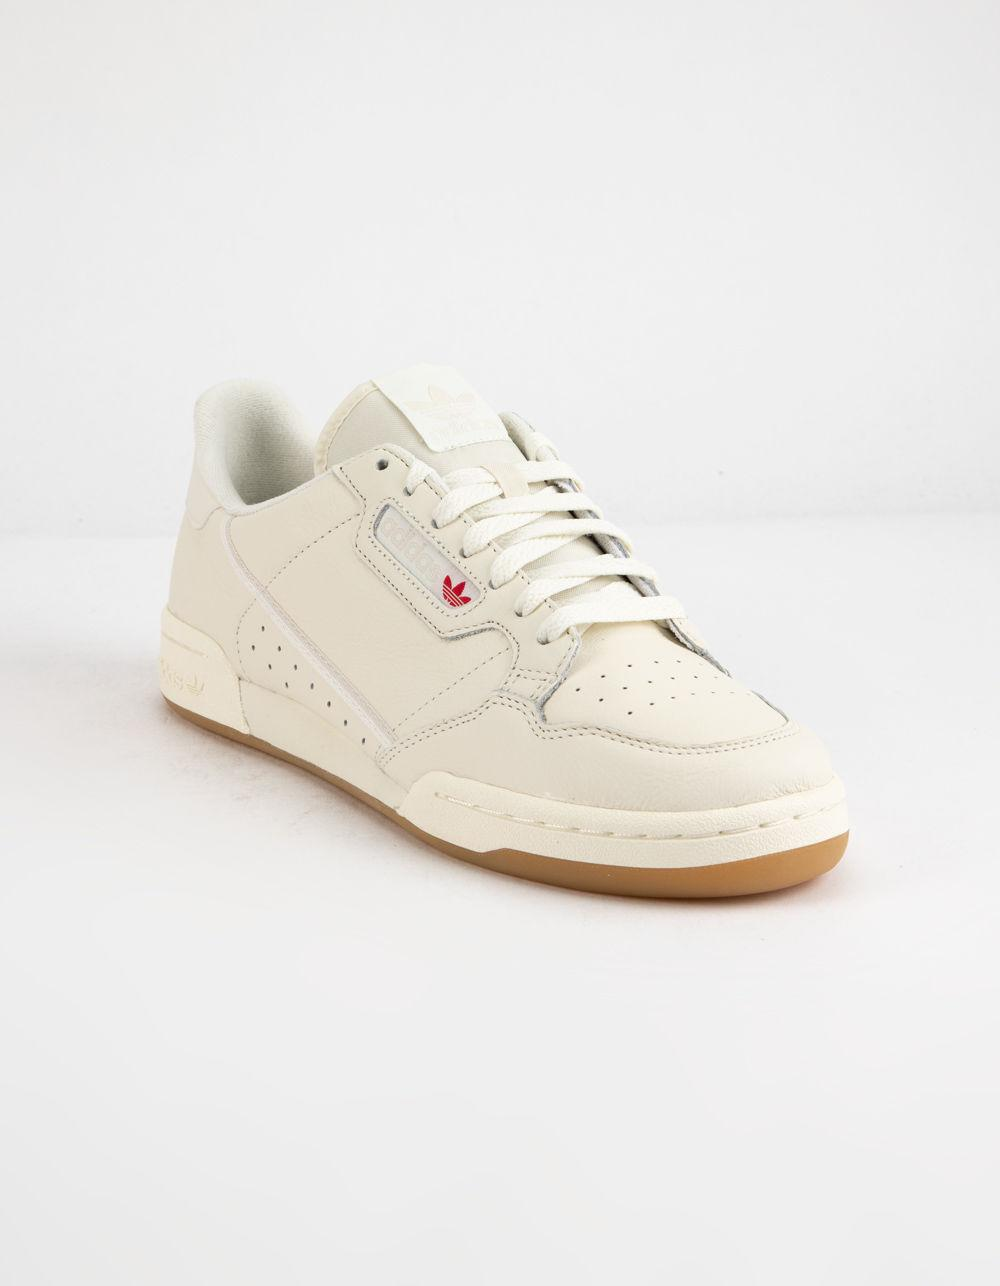 aadb1b38d48b Lyst - adidas Continental 80 Off White   Gum Shoes in White for Men